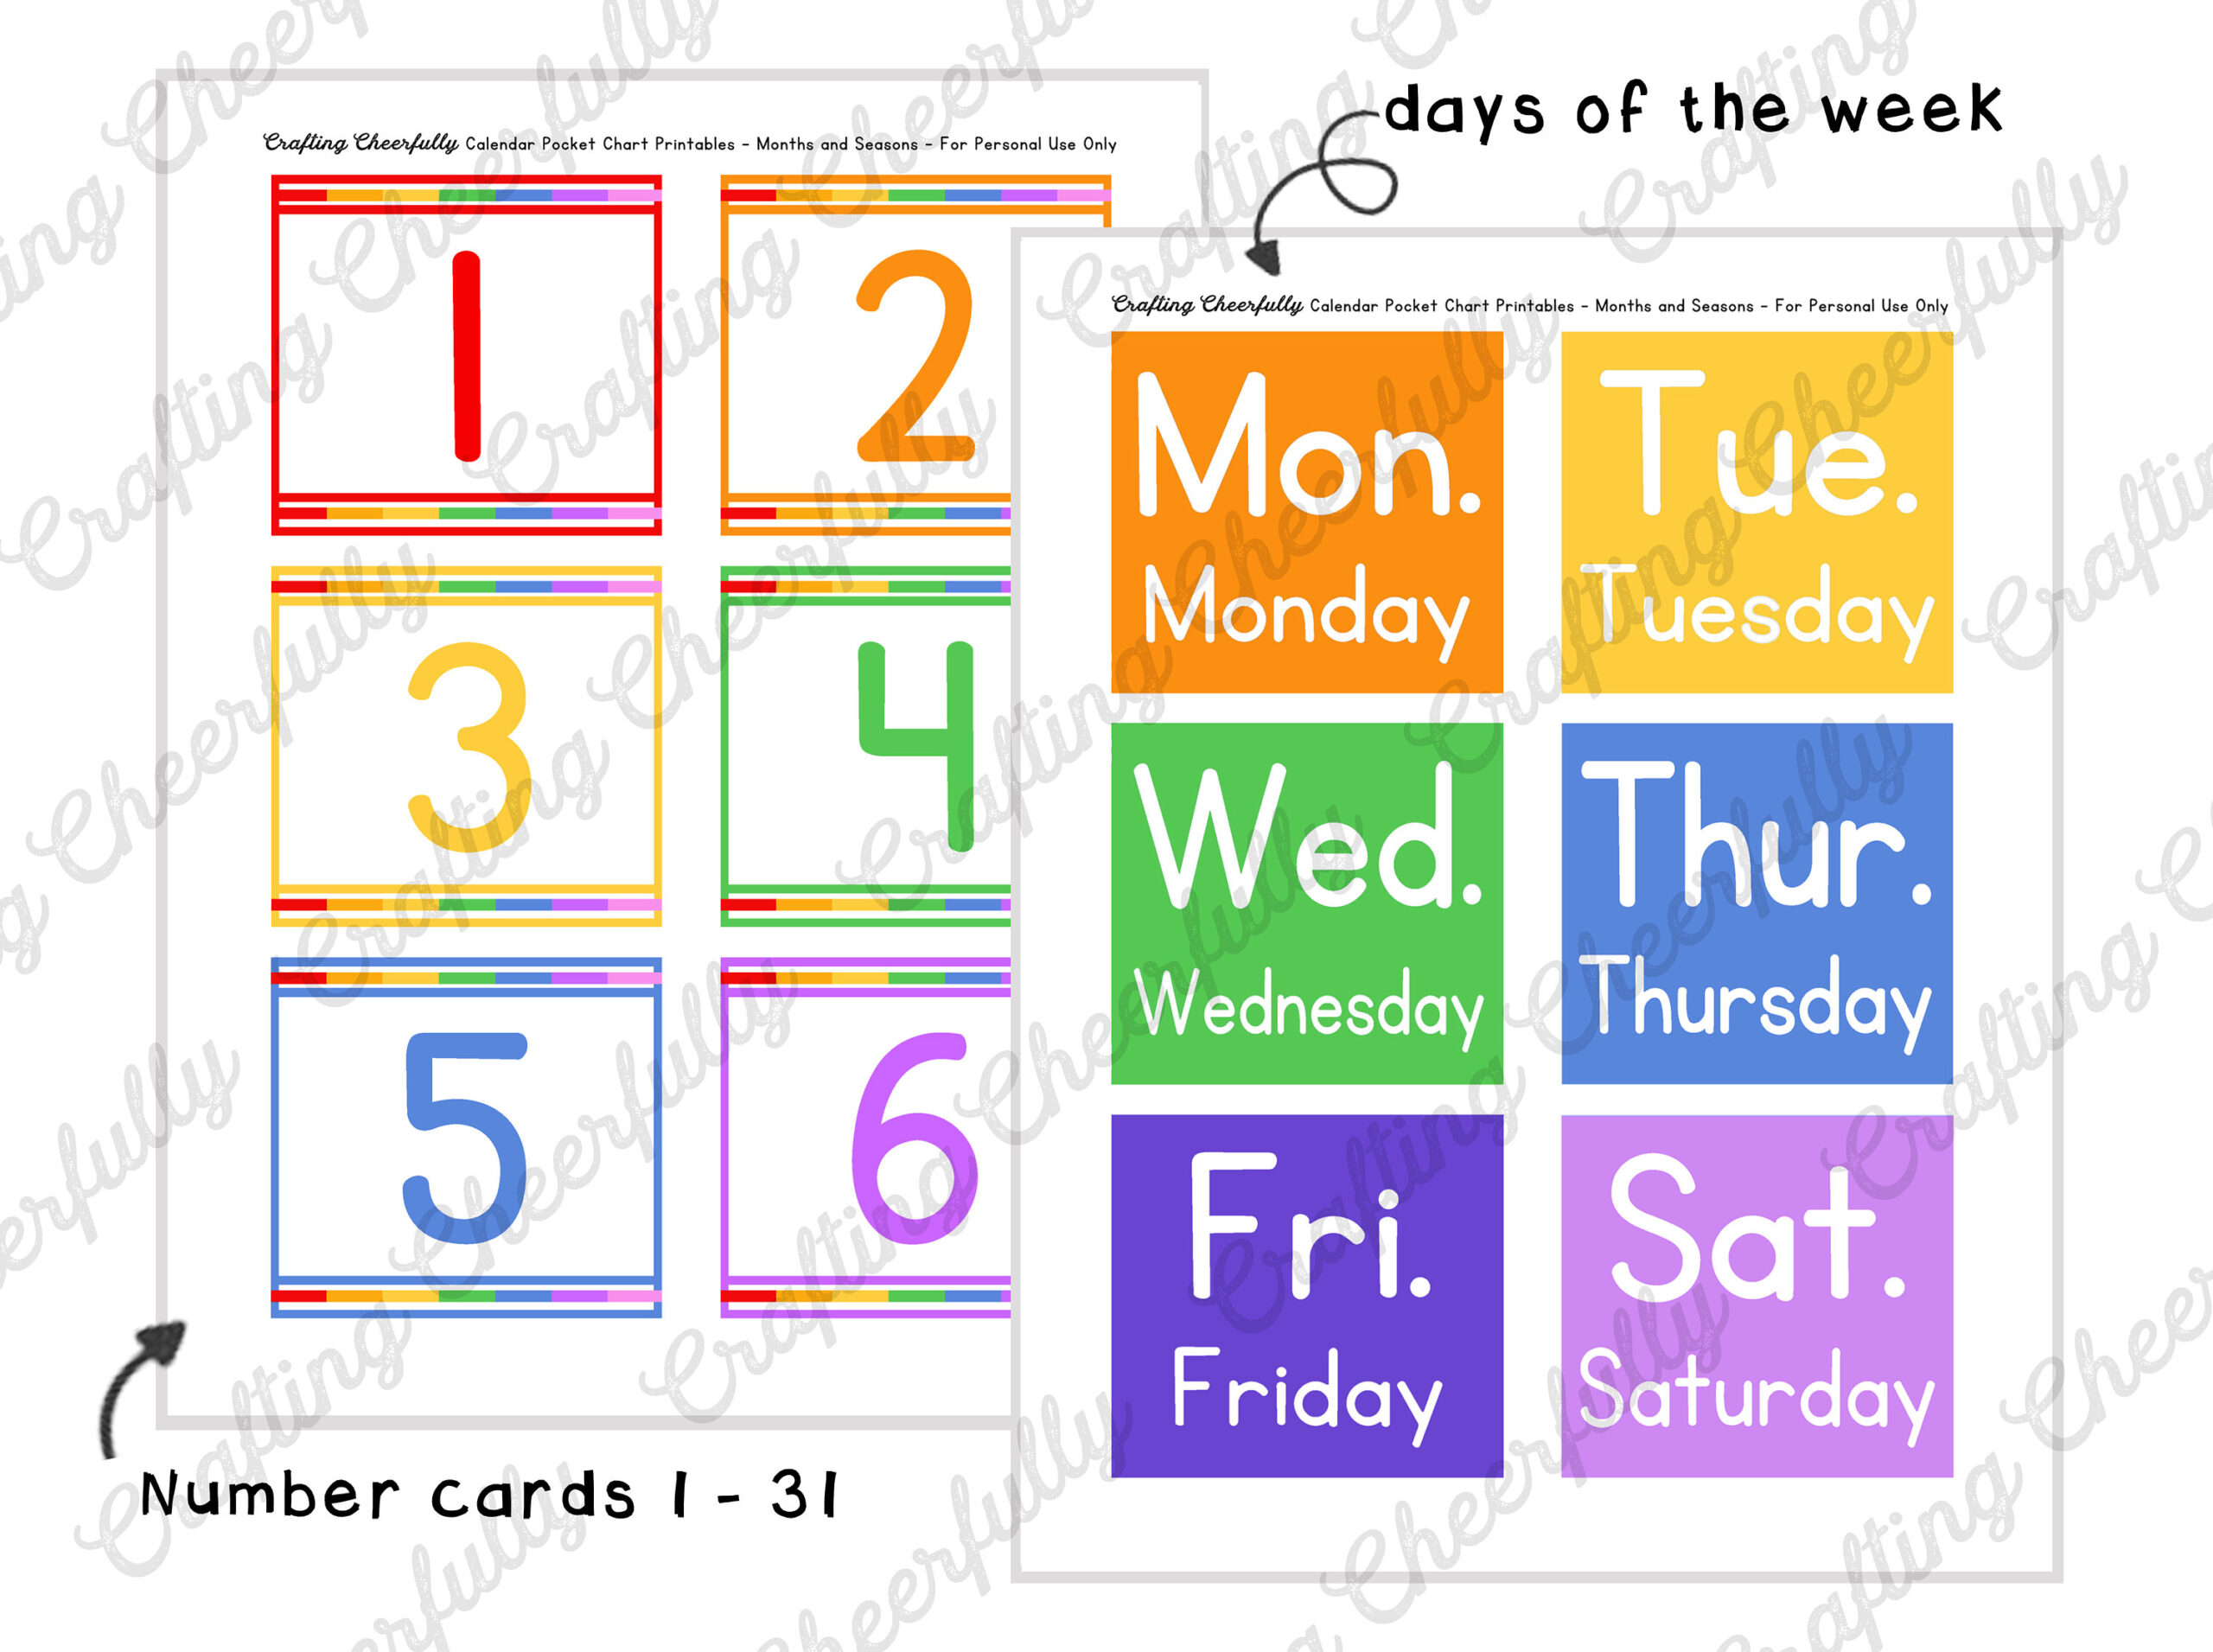 Free Printable Calendar Numbers For Pocket Chart